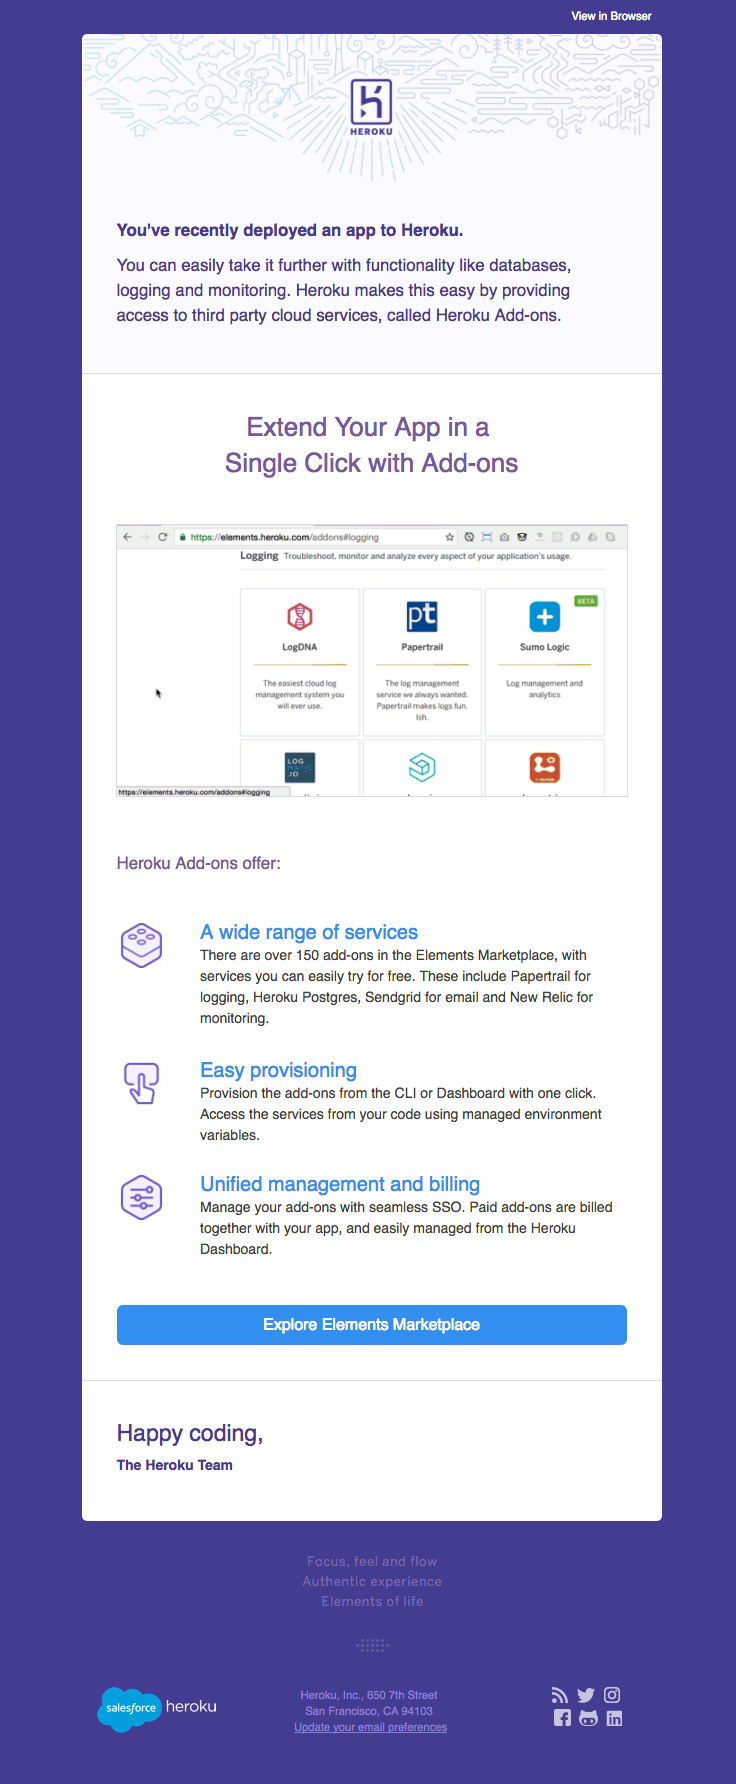 Heroku sent this email with the subject line: Extend your